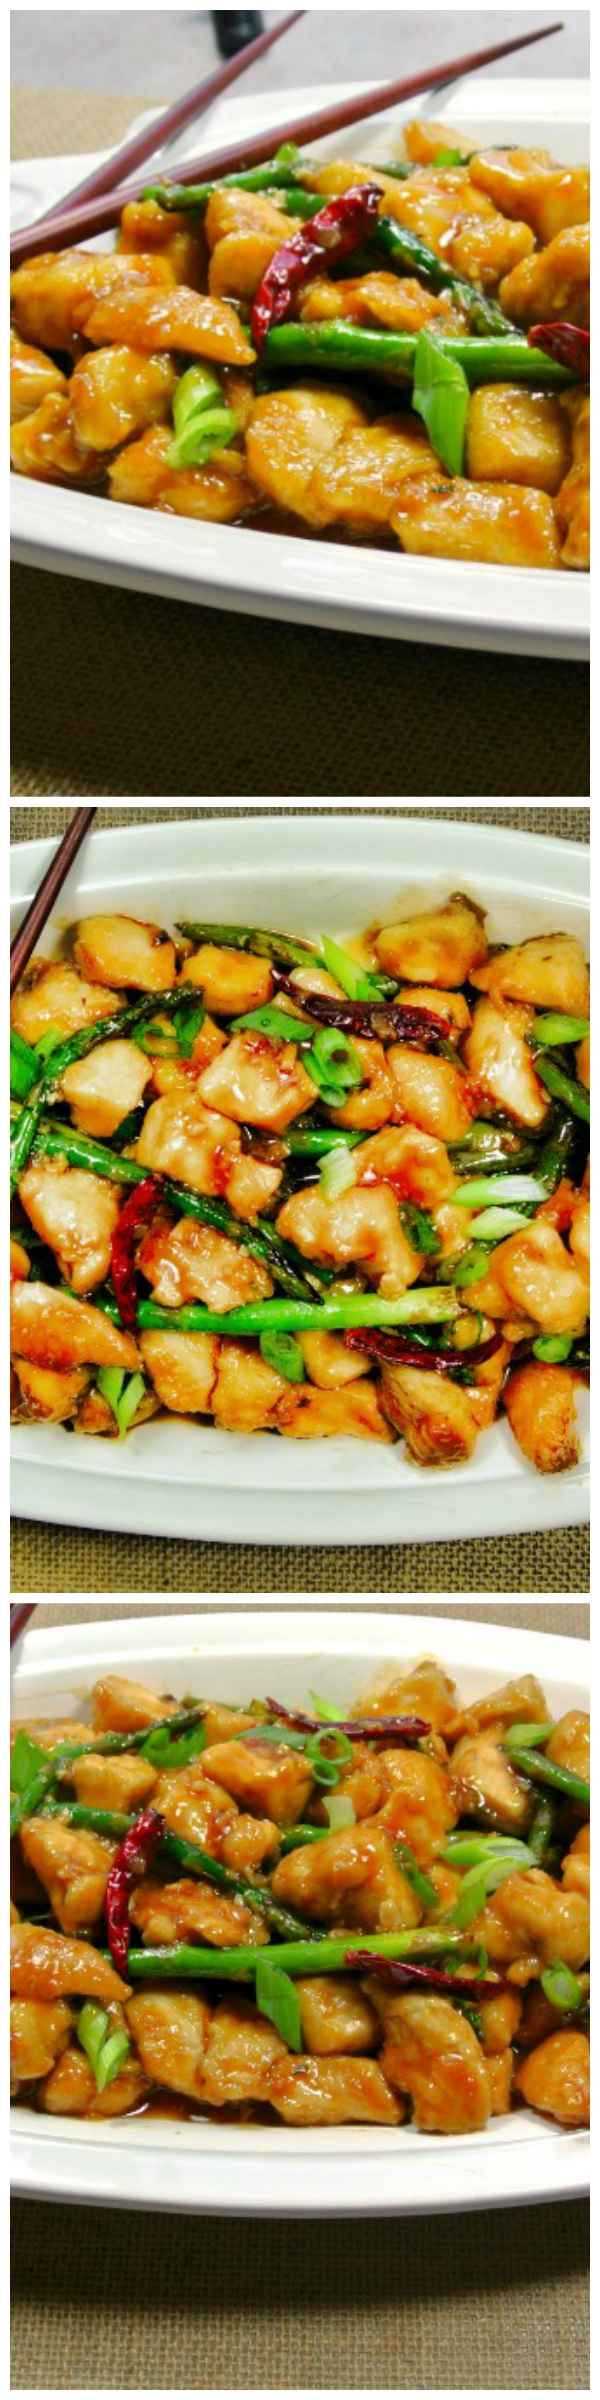 general tso's chicken  try this easy low carb version of